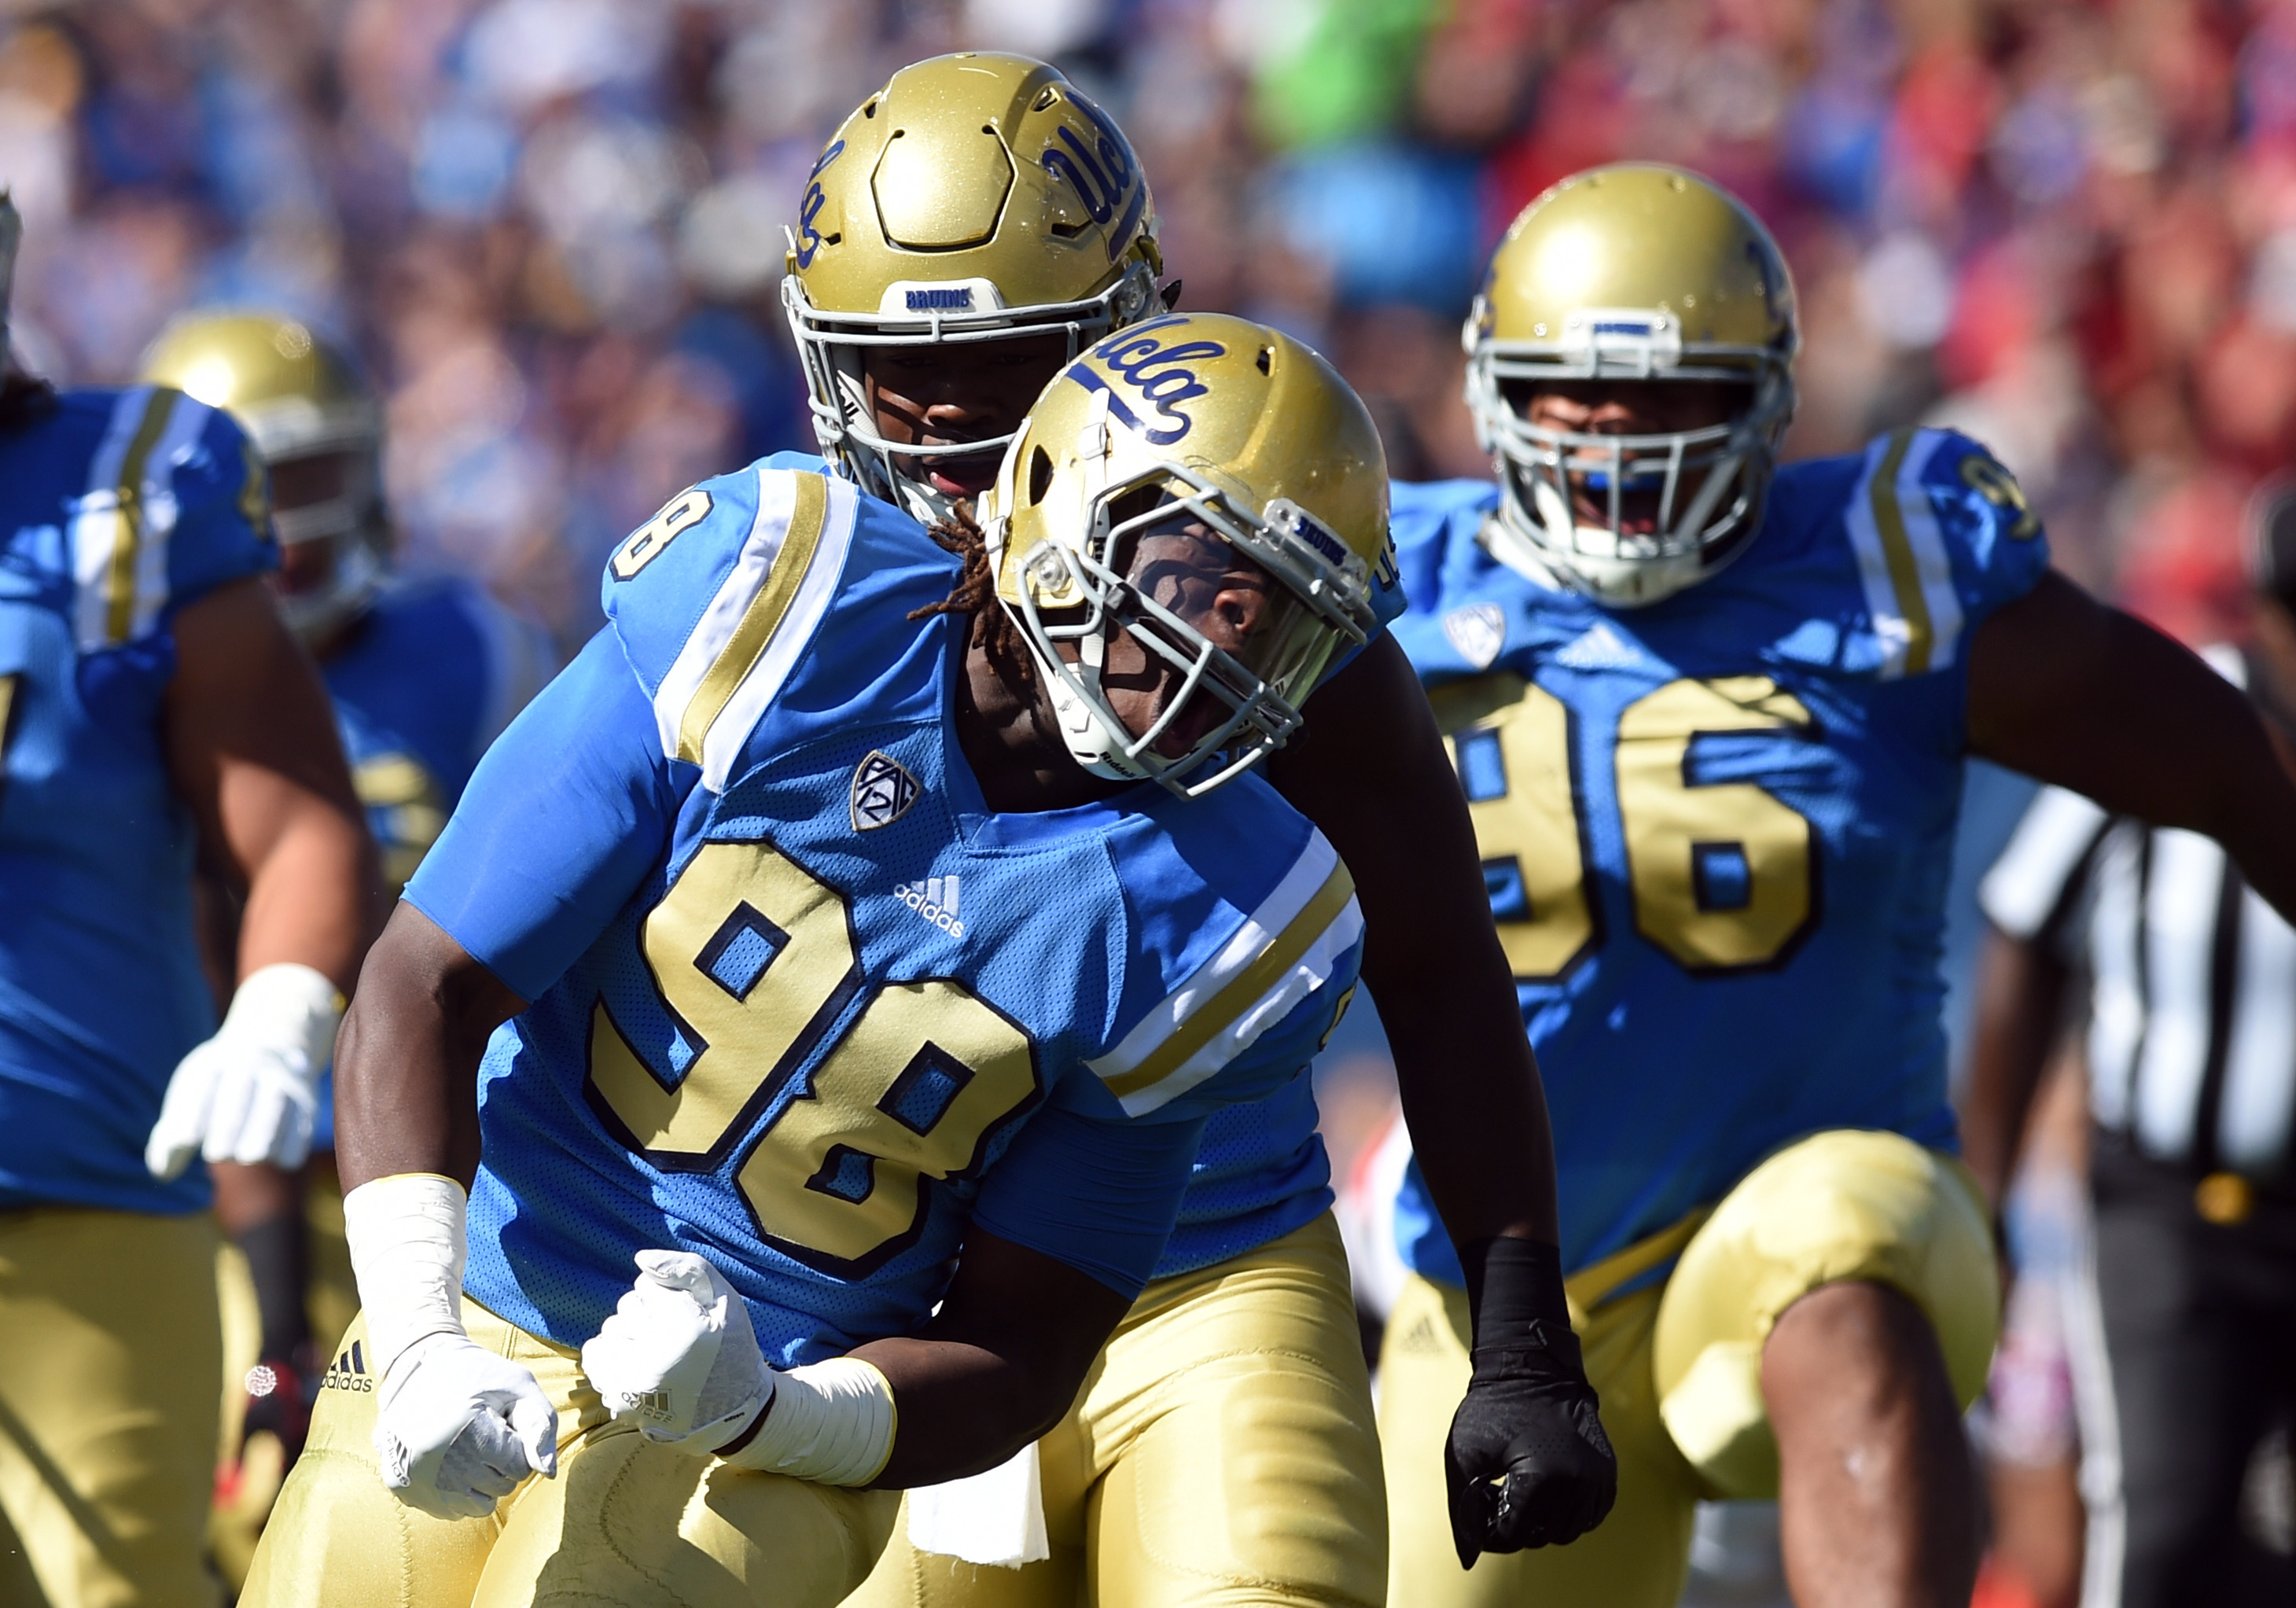 617291938-ncaa-football-oct-22-utah-at-ucla.jpg